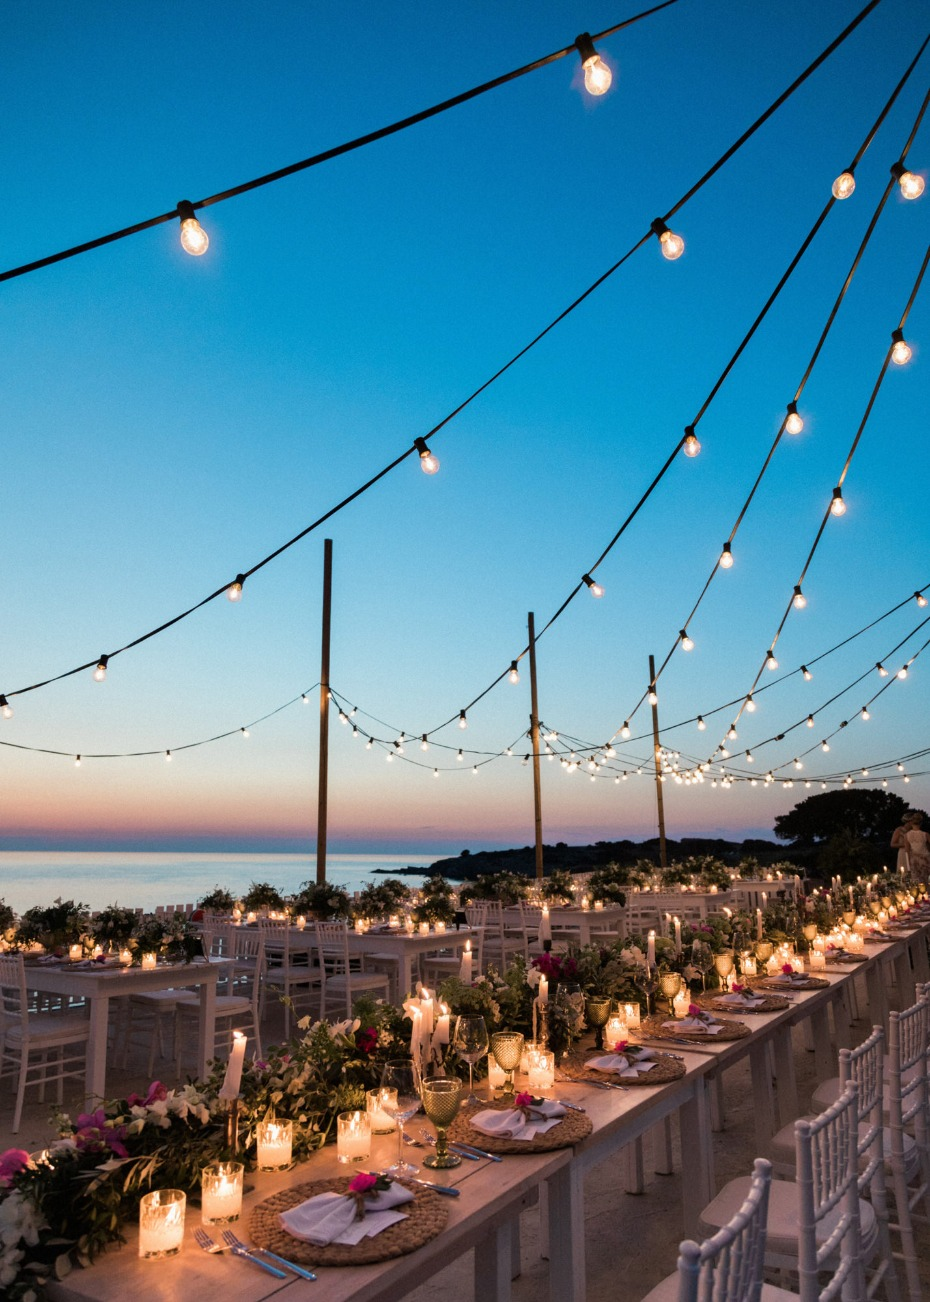 Picturesque reception in Greece